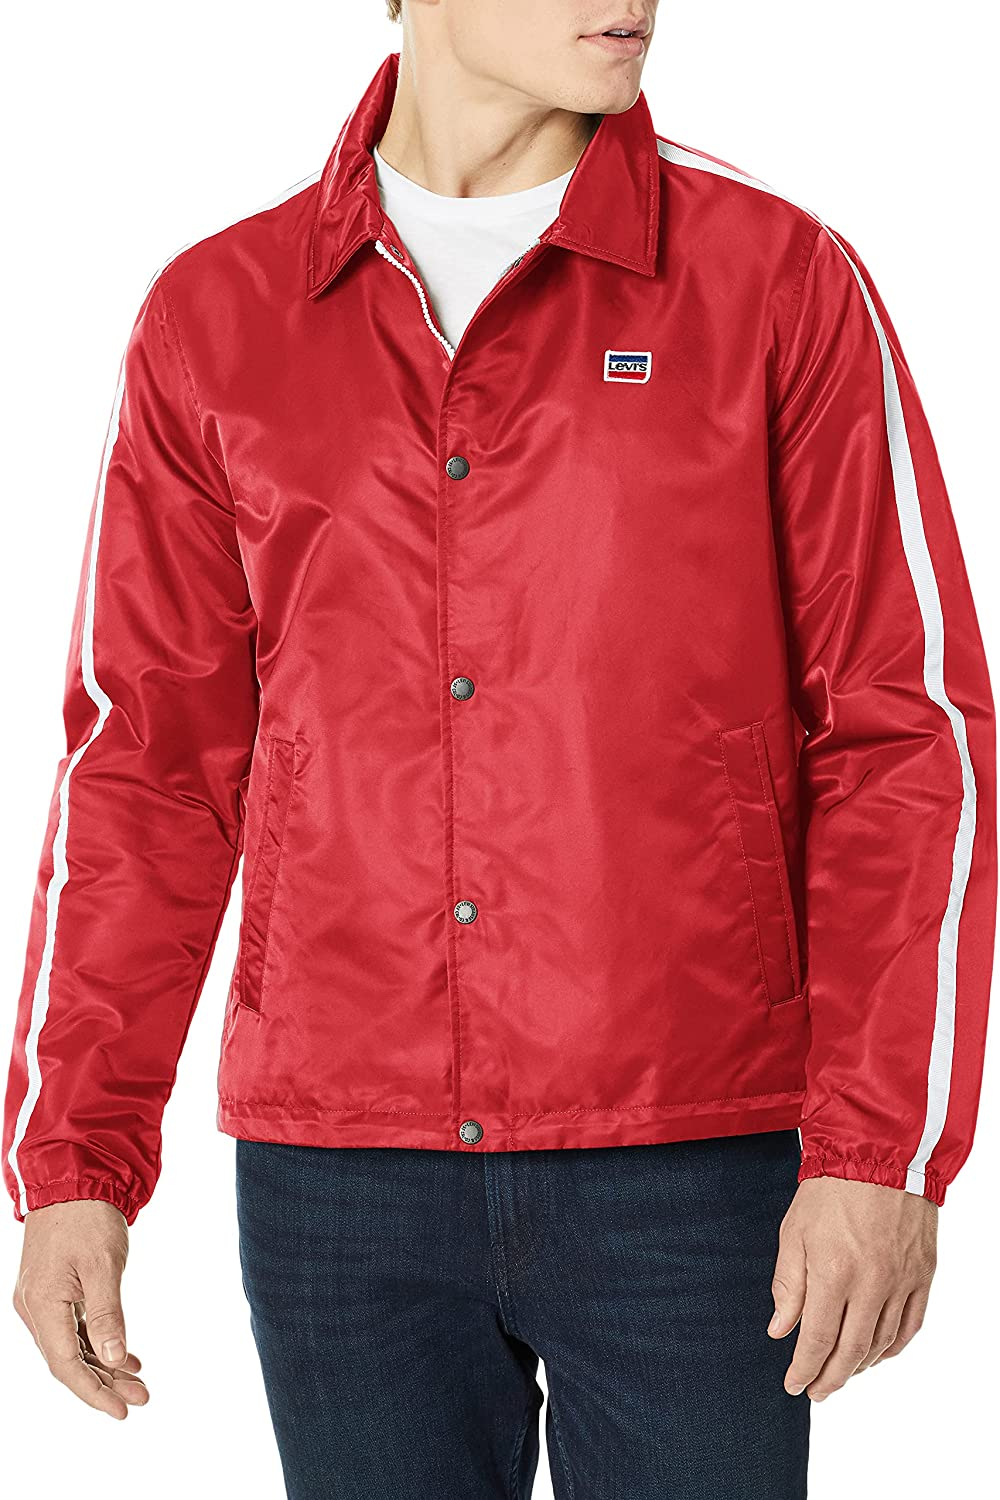 Free Shipping Cheap Bargain Gift Levi's Men's Retro Fort Worth Mall Jacket Coaches